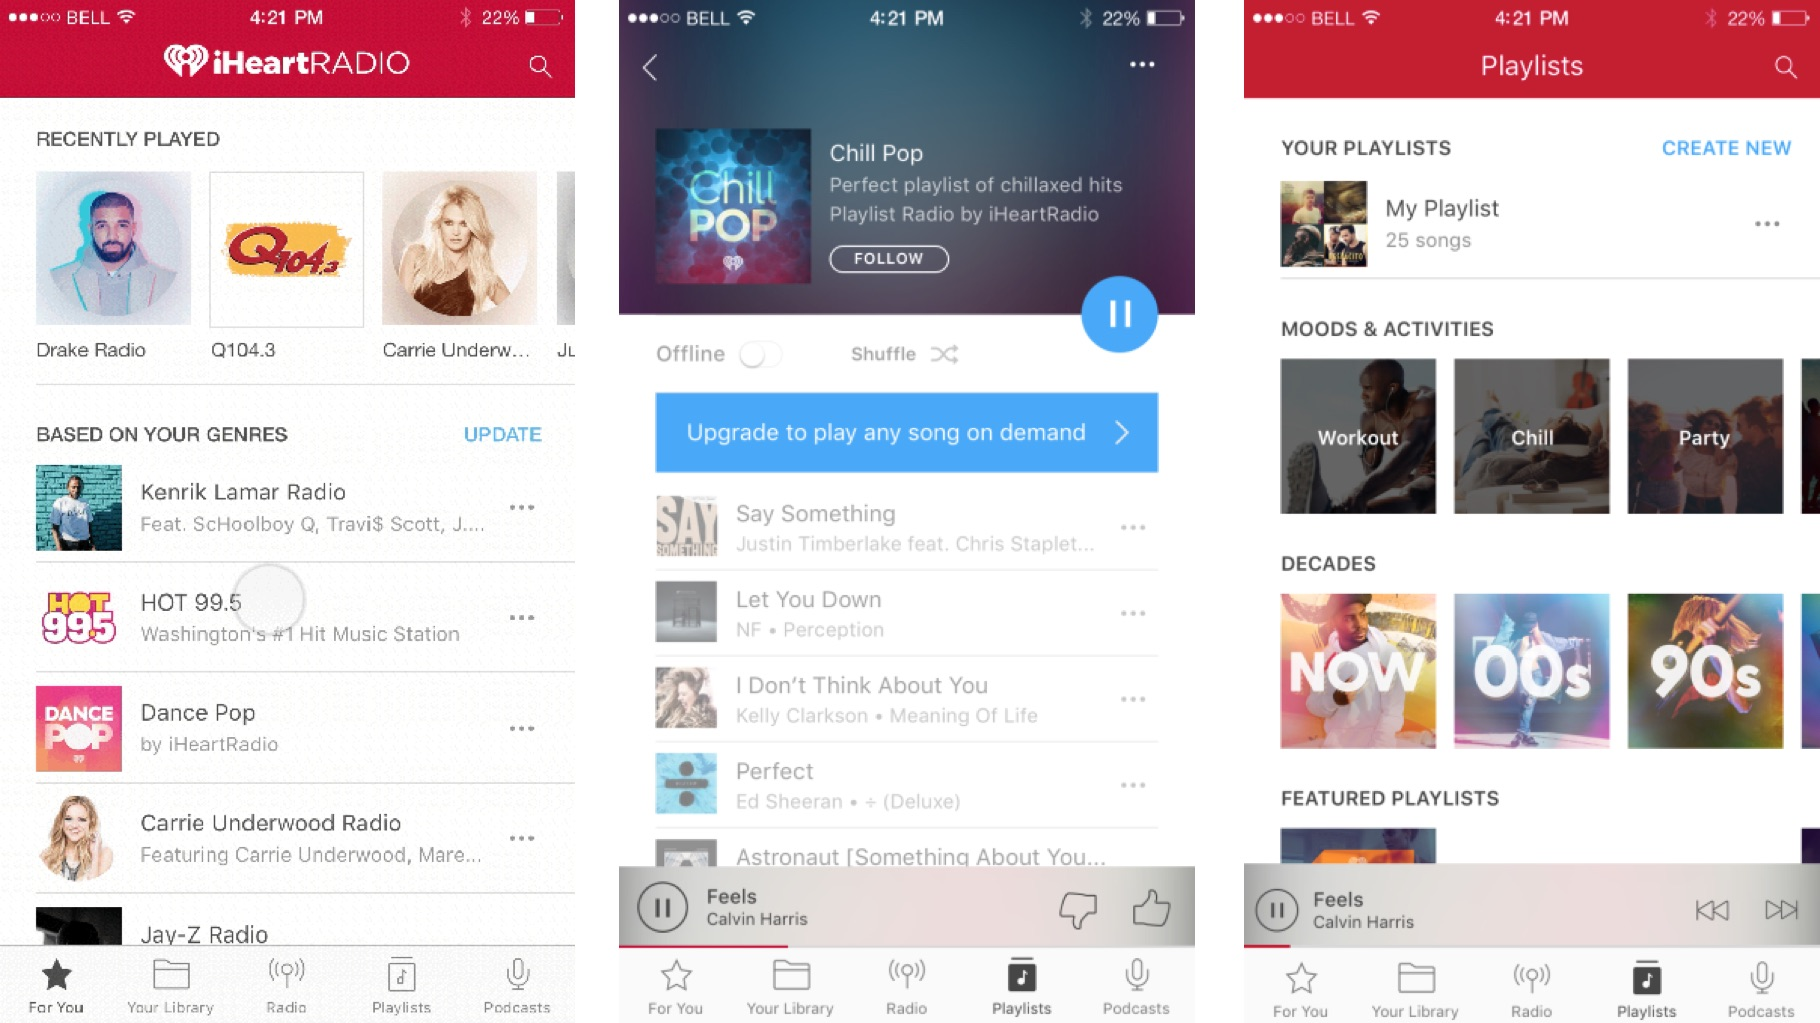 iHeartRadio offers curated playlists to free users - AIVAnet